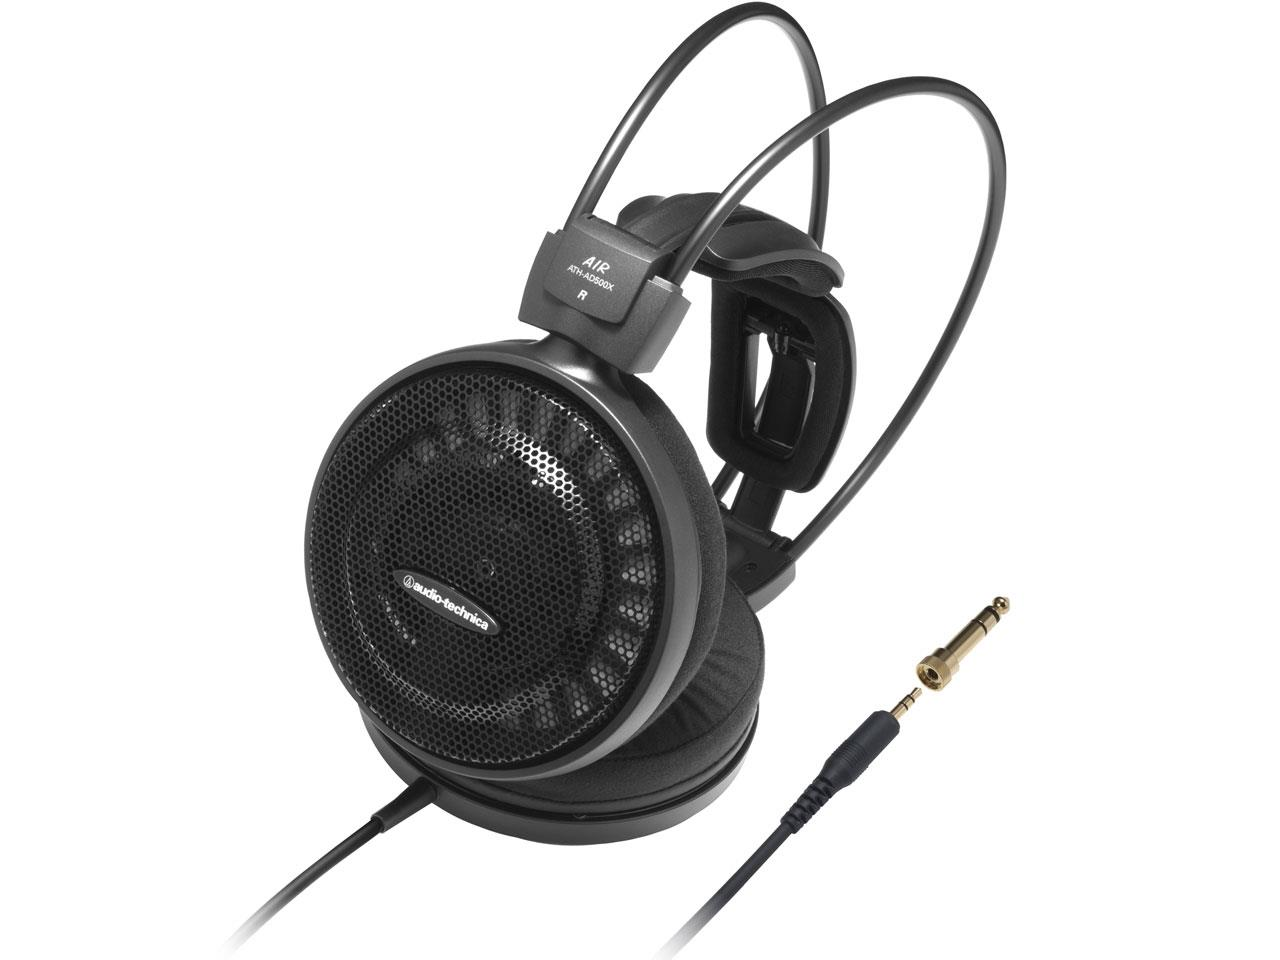 (PM Availability) Audio Technica ATH-AD500x / AD 500x